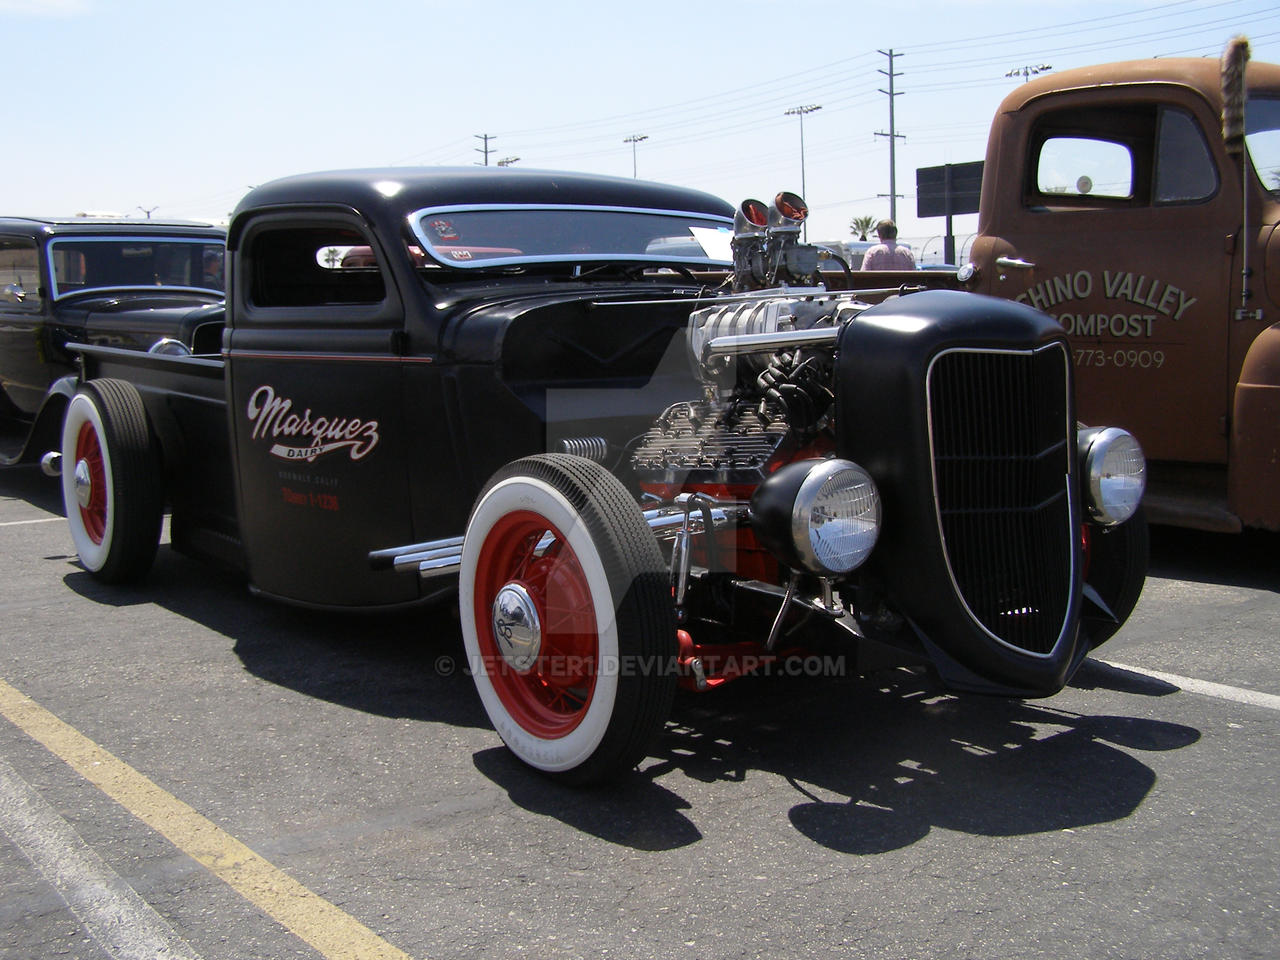 Another Black Hot Rod Truck by Jetster1 on DeviantArt